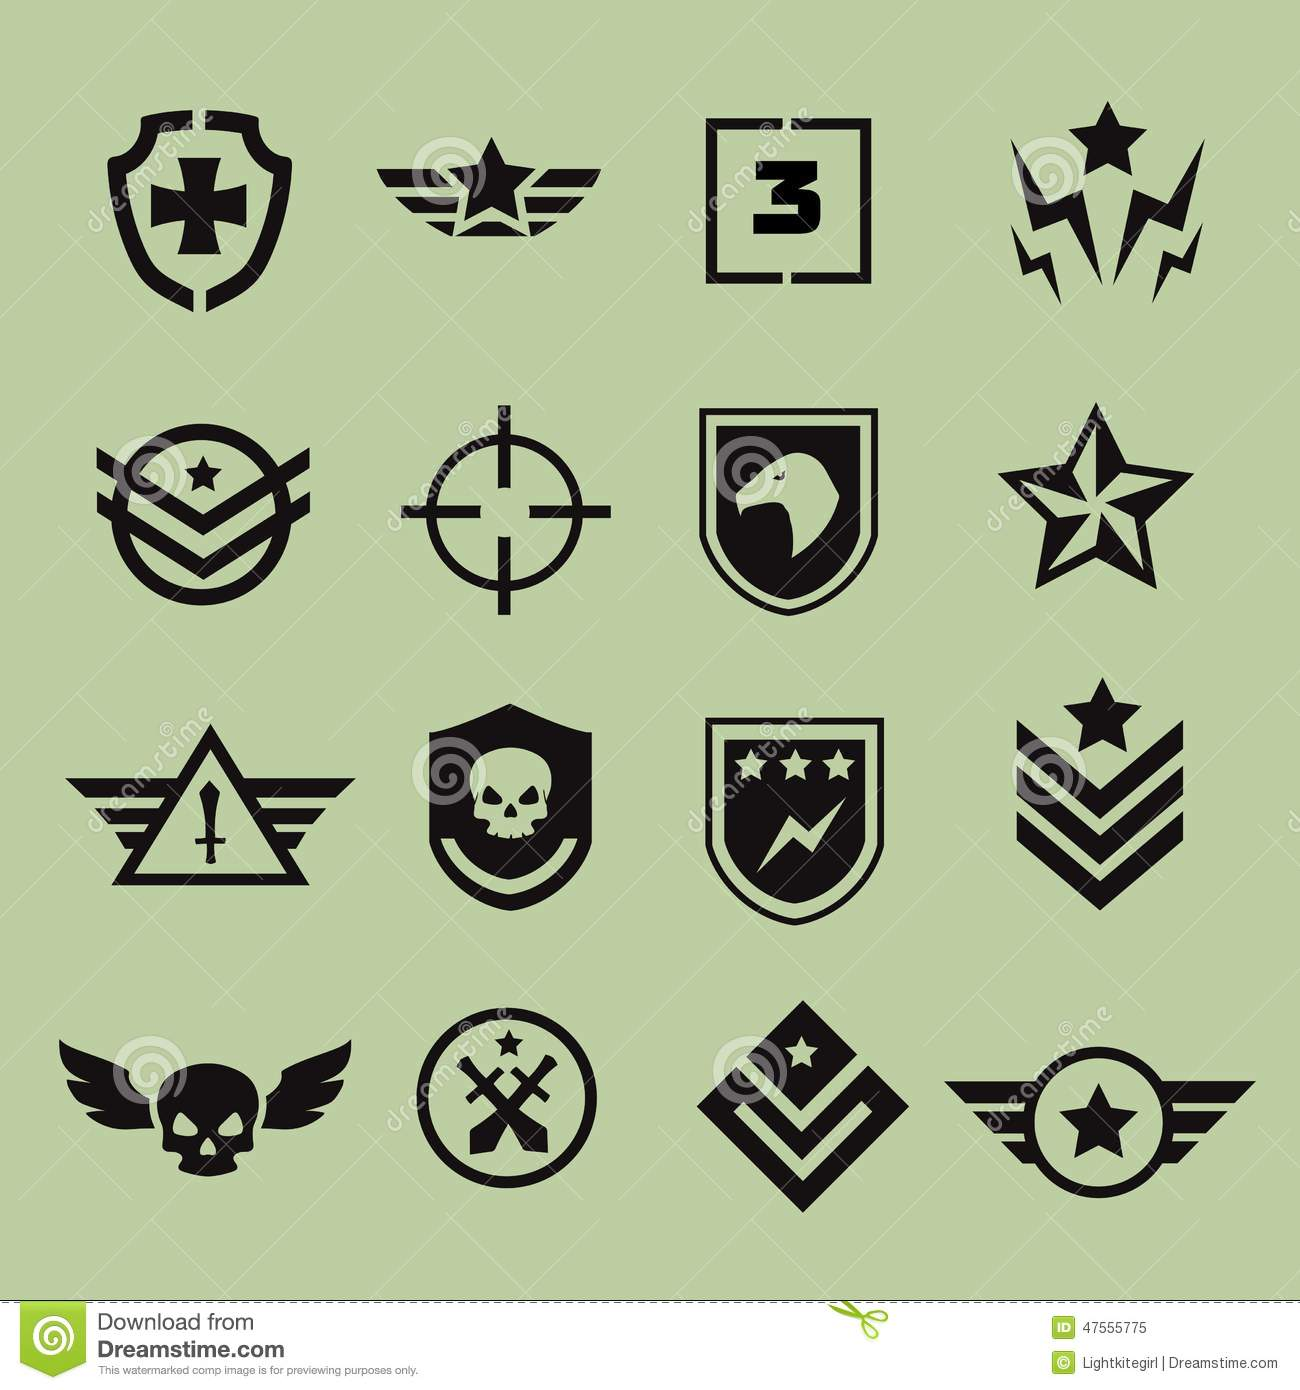 Military Symbols Pictures to Pin on Pinterest - ThePinsta